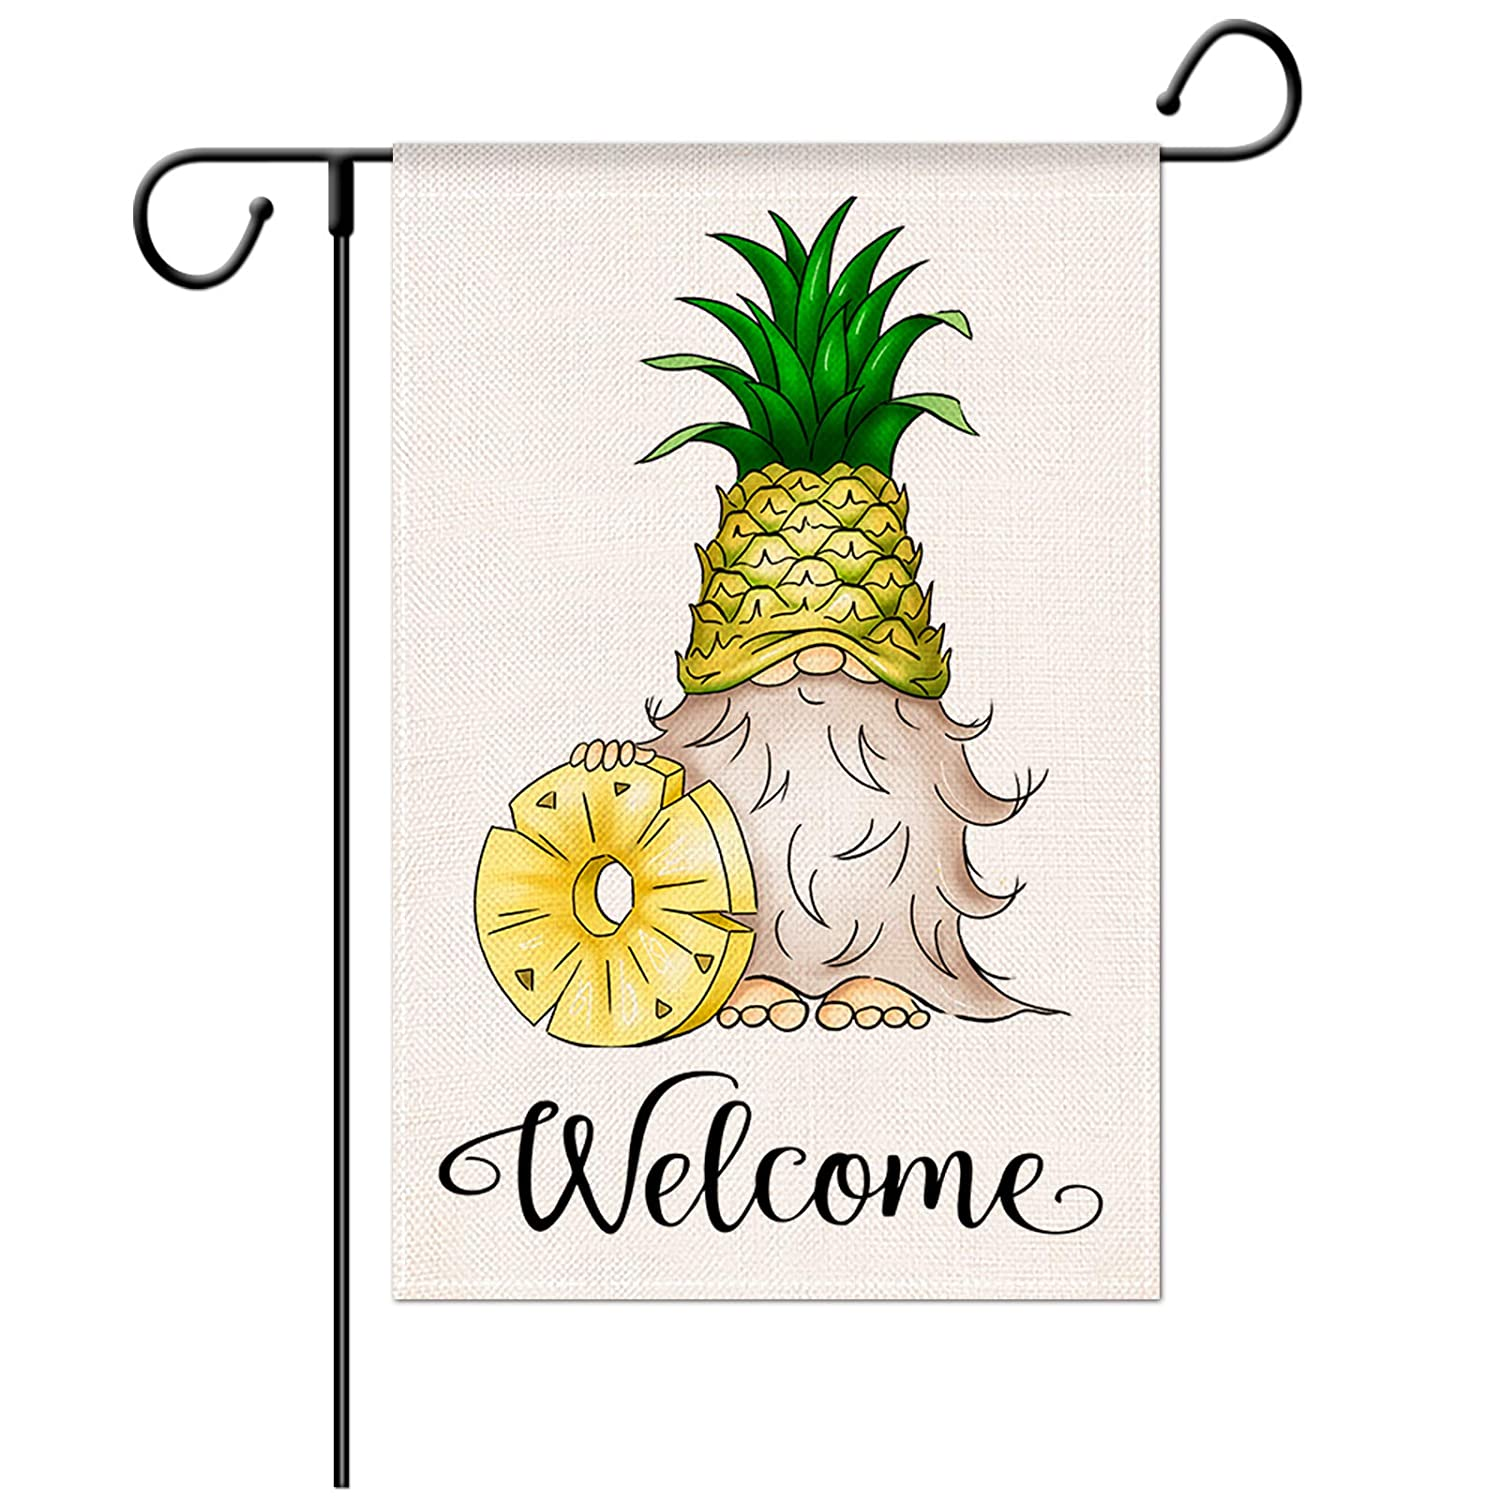 Jartinle Welcome Gnome Garden Flag for Outside, Decorative Welcome Pineapple Small House Flag Double Sided Yard Outdoor Farmhouse Summer Decorations 12.5x18